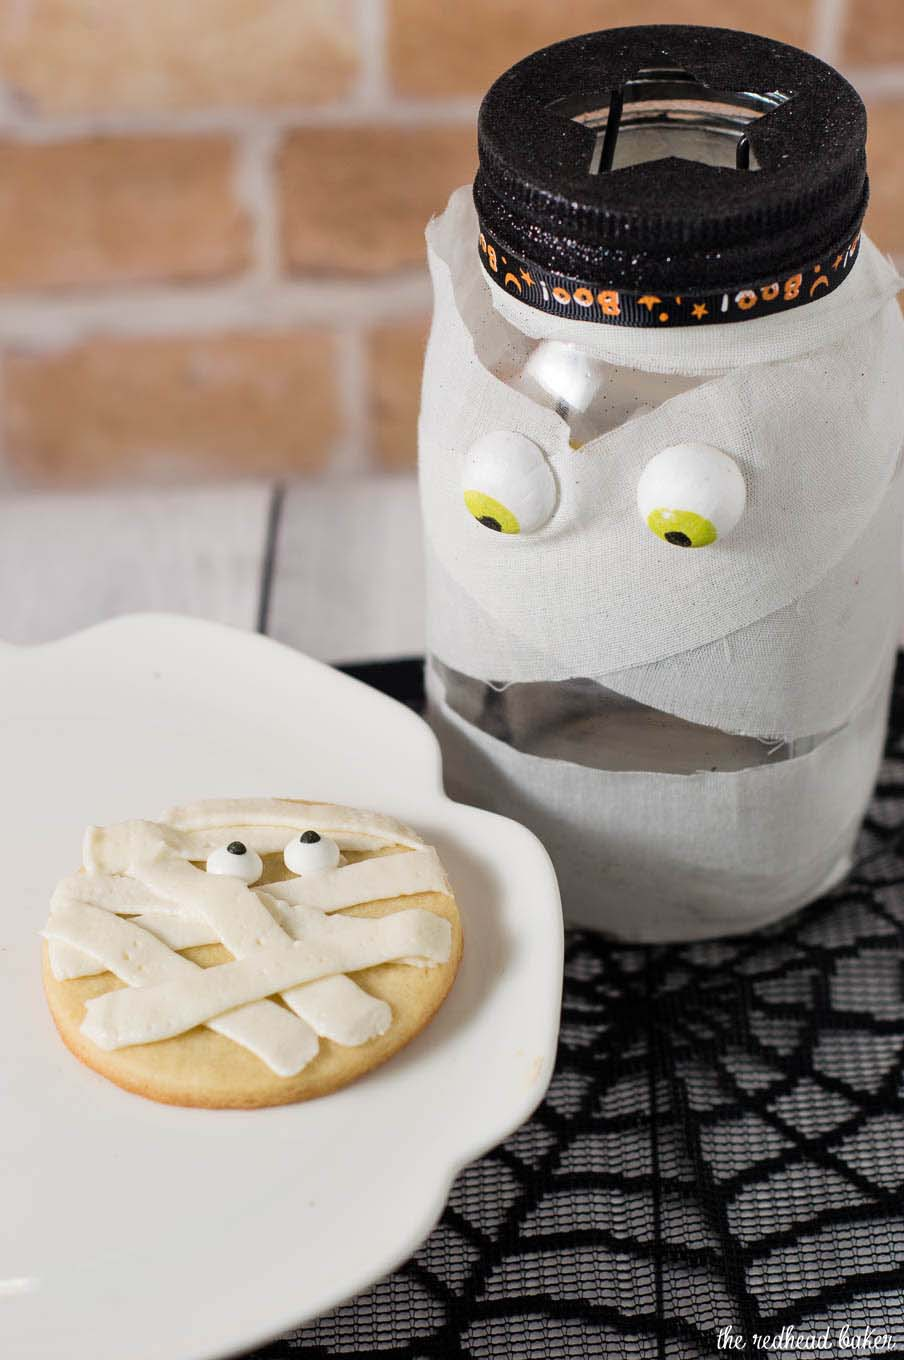 Scare up some easy Halloween treats — make these spooky mummy cookies. Simply pipe a few lines of frosting onto round sugar cookies, add candy eyes and you're done! #ProgressiveEats